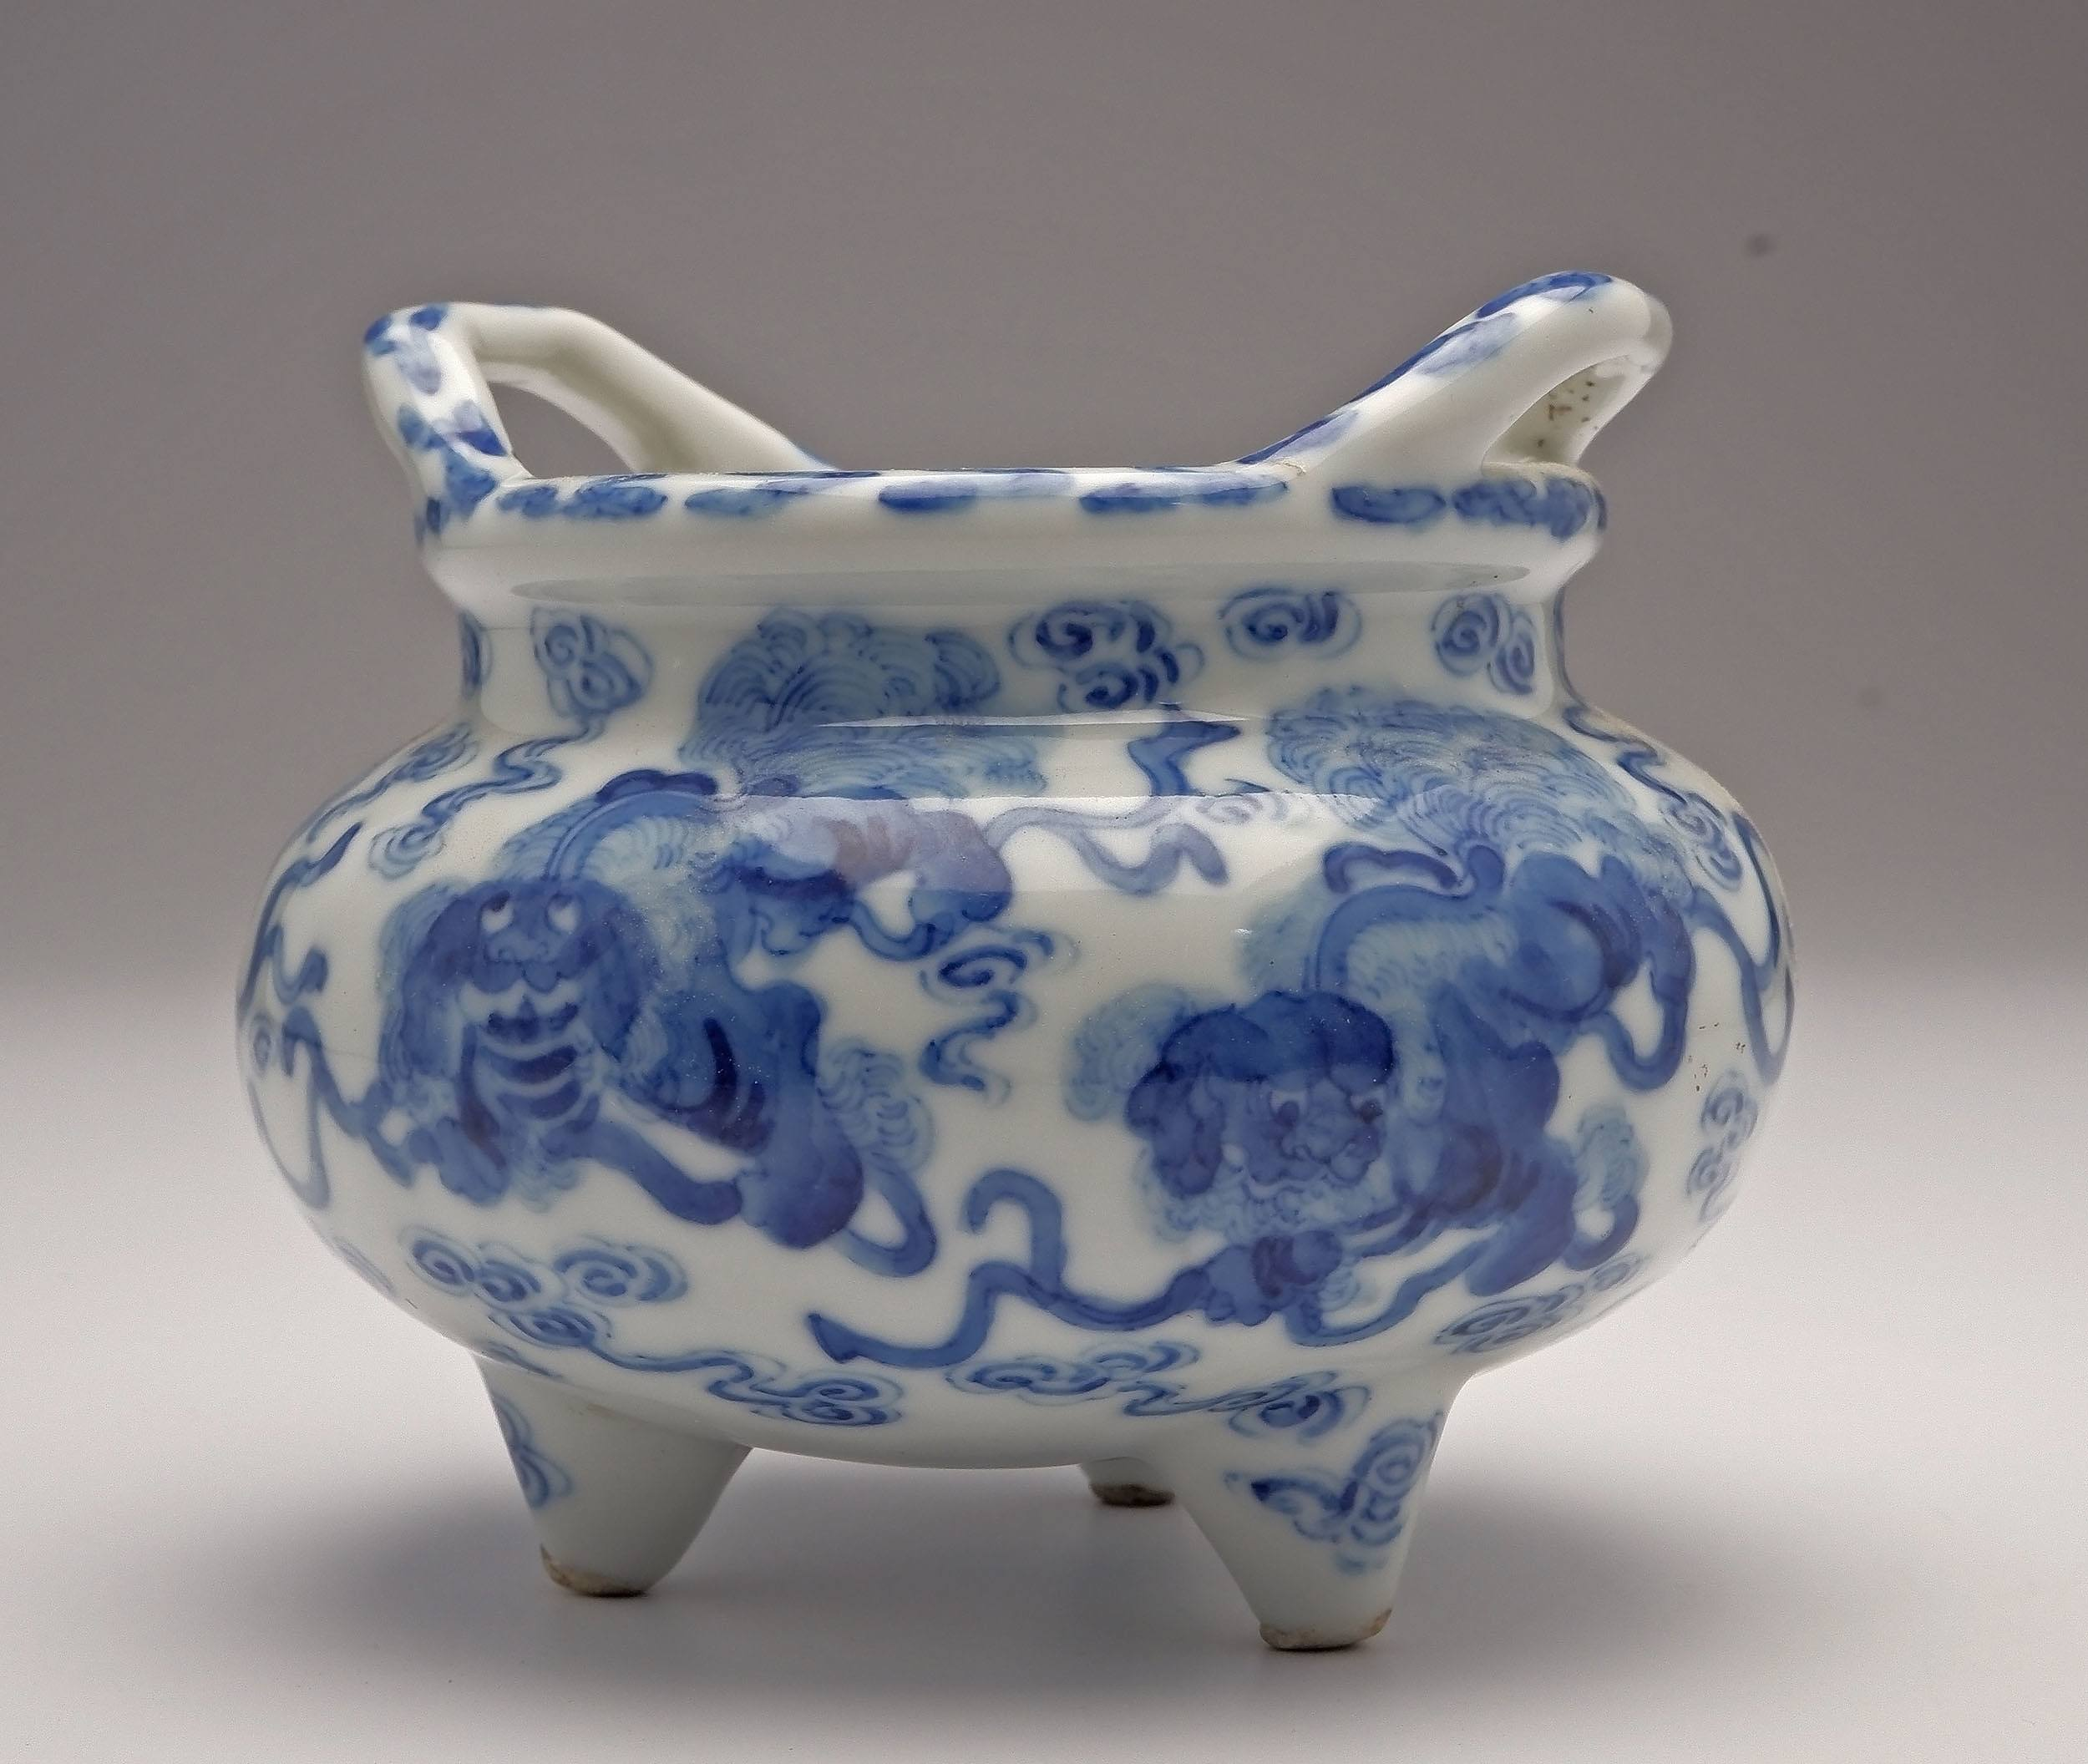 'Chinese Blue and White Buddhist Lion Tripod Censer, Apocryphal Yongzheng Mark, Late Qing or Republic Period'